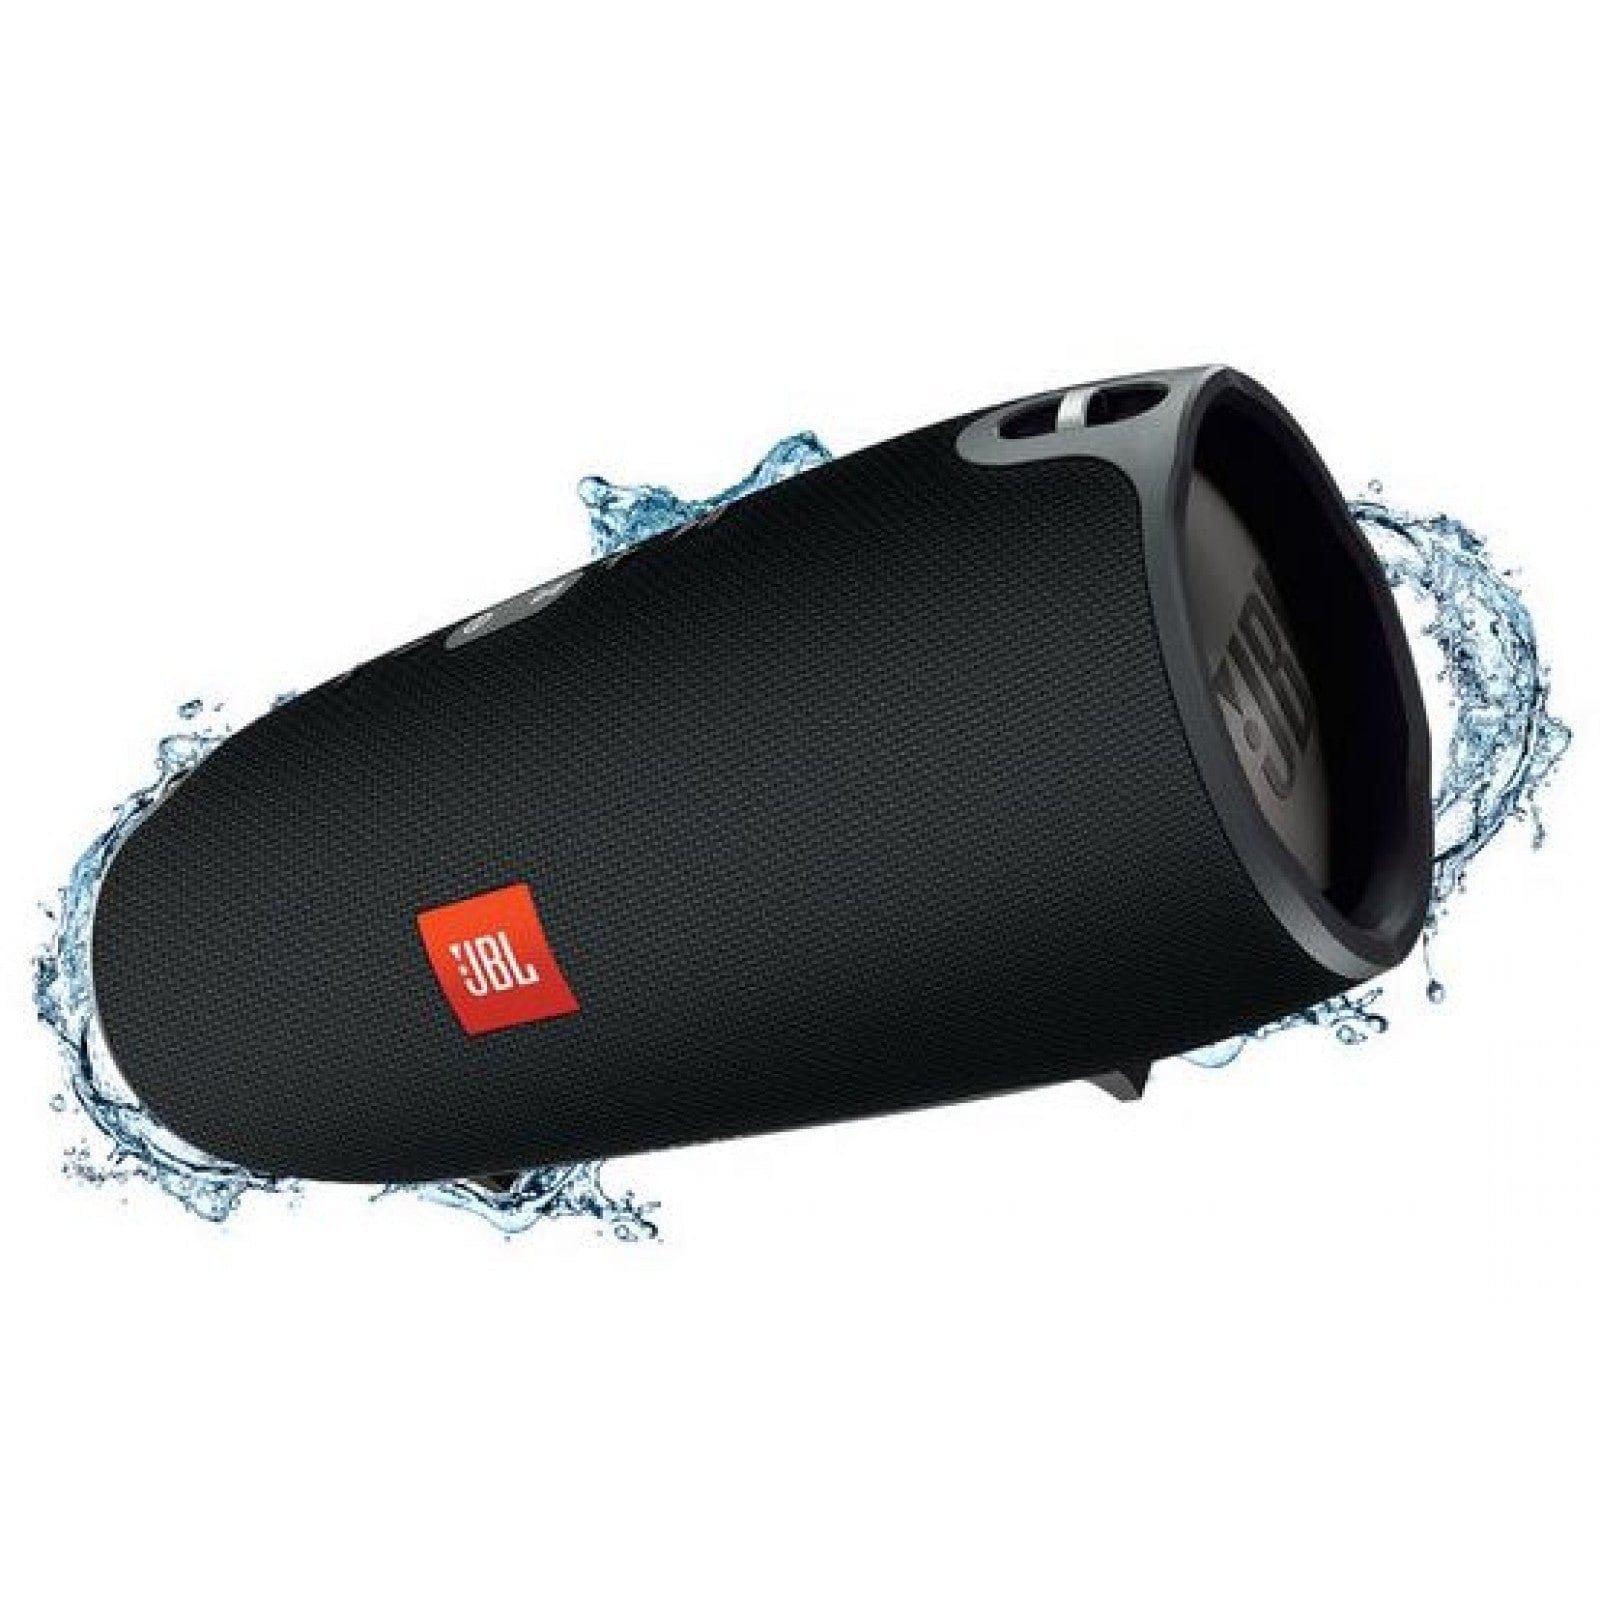 Exclusivebrandsonline speakers JBL Xtreme